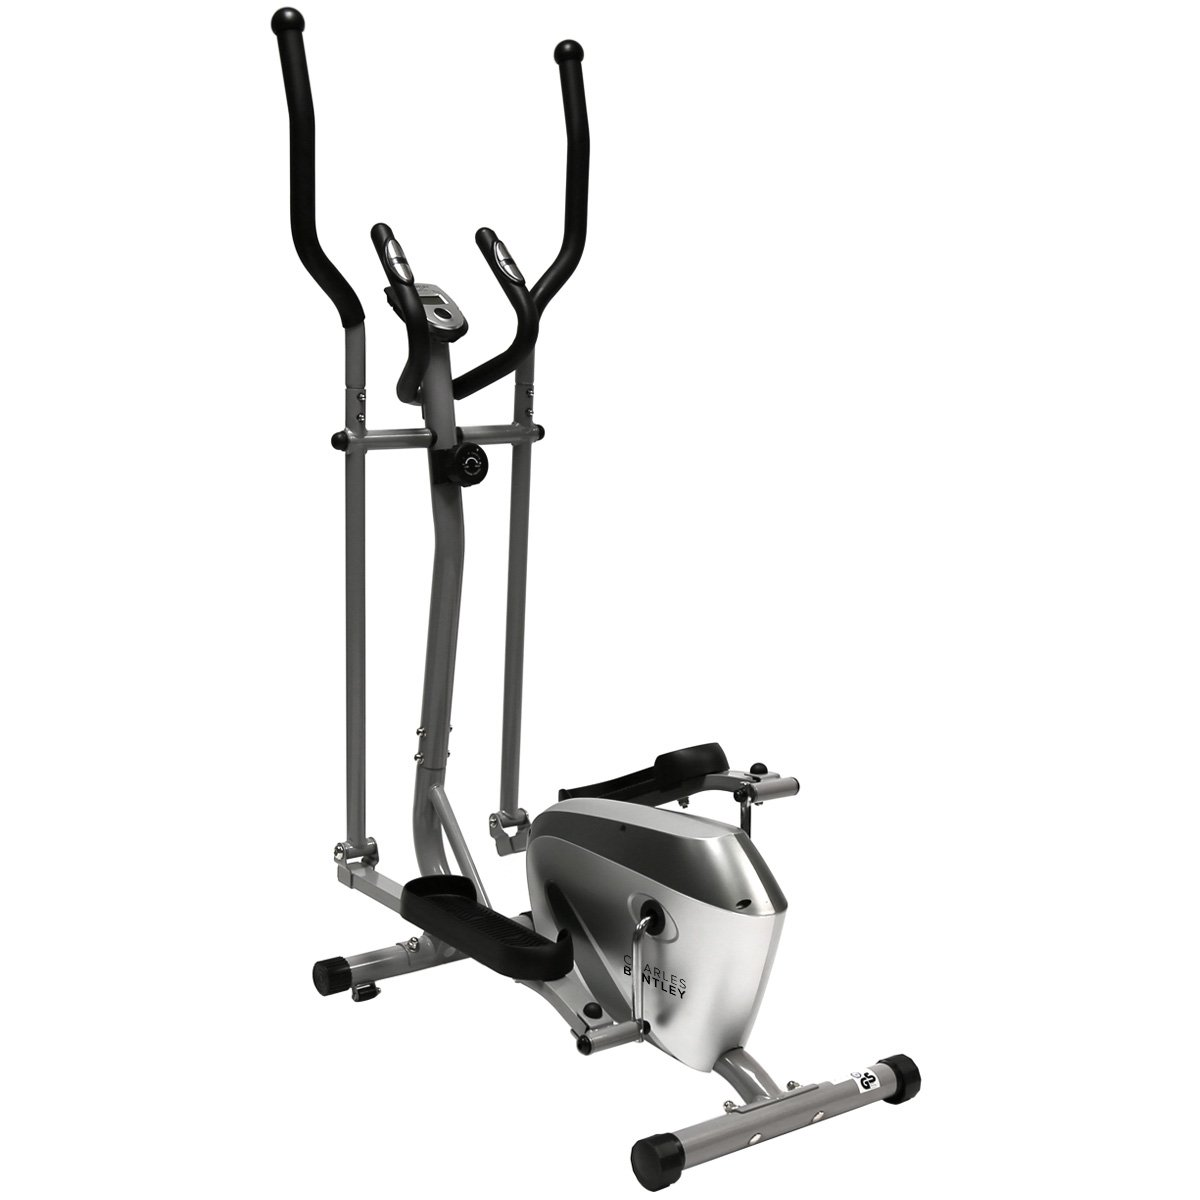 Bentley Fitness - Ellipsentrainer Crosstrainer - Cardio-Fitnessgerät